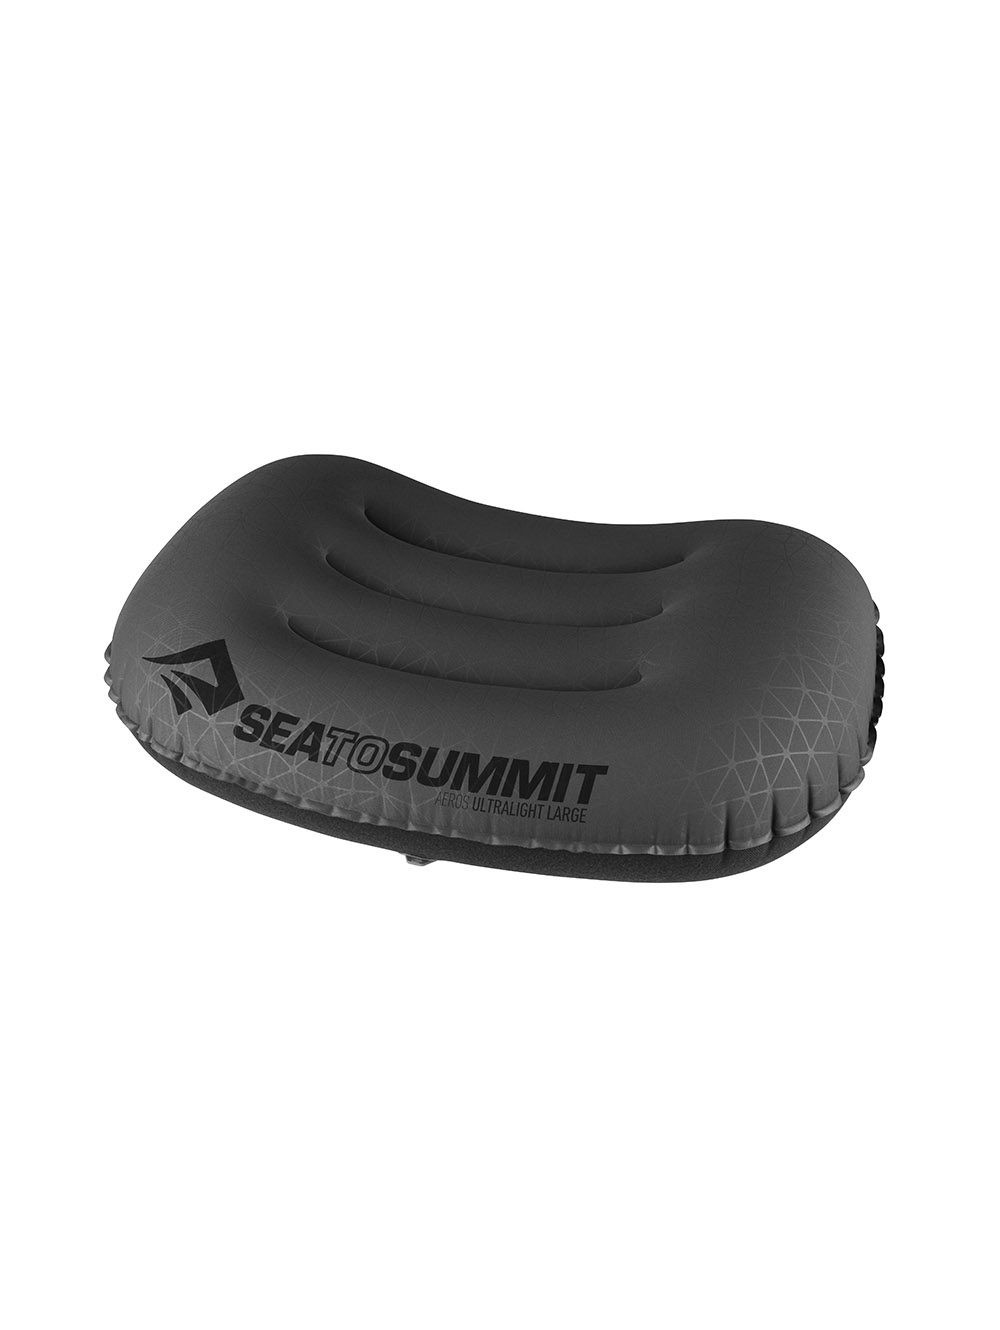 Oreiller Aeros Ultralight Pillow Sea to Summit